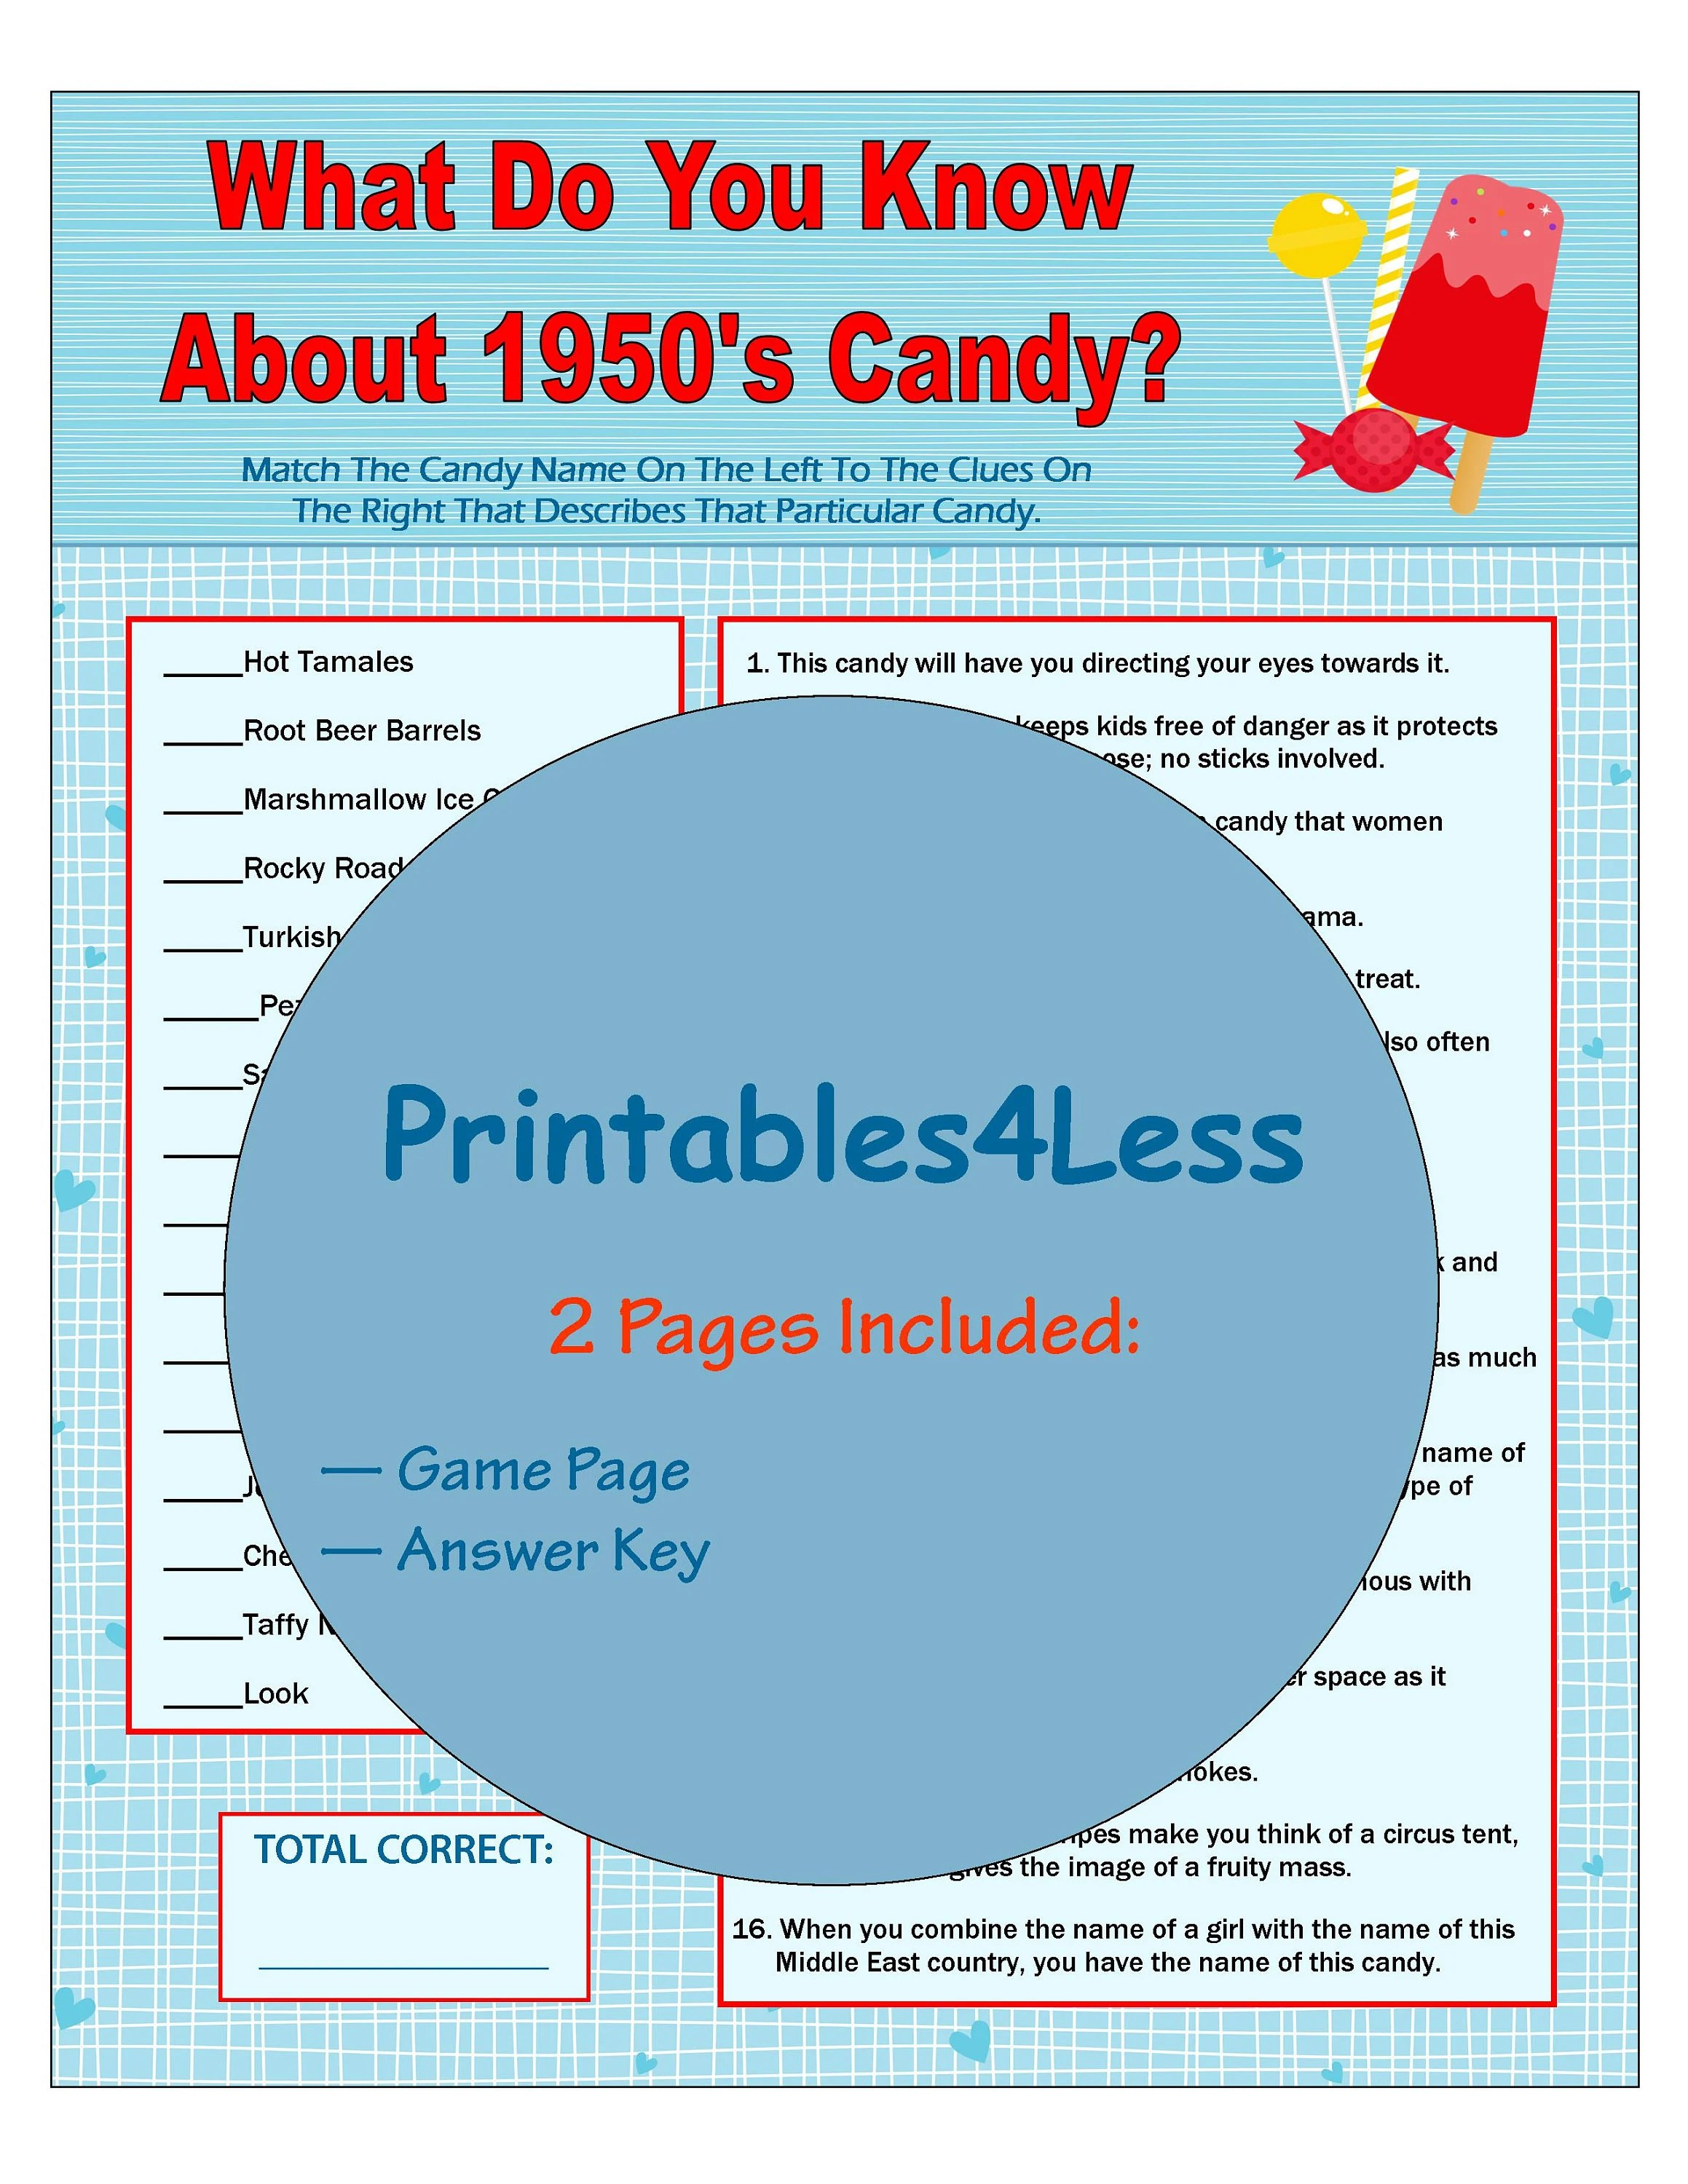 1950s Candy Game Candy Trivia Game Printable Trivia Game Etsy